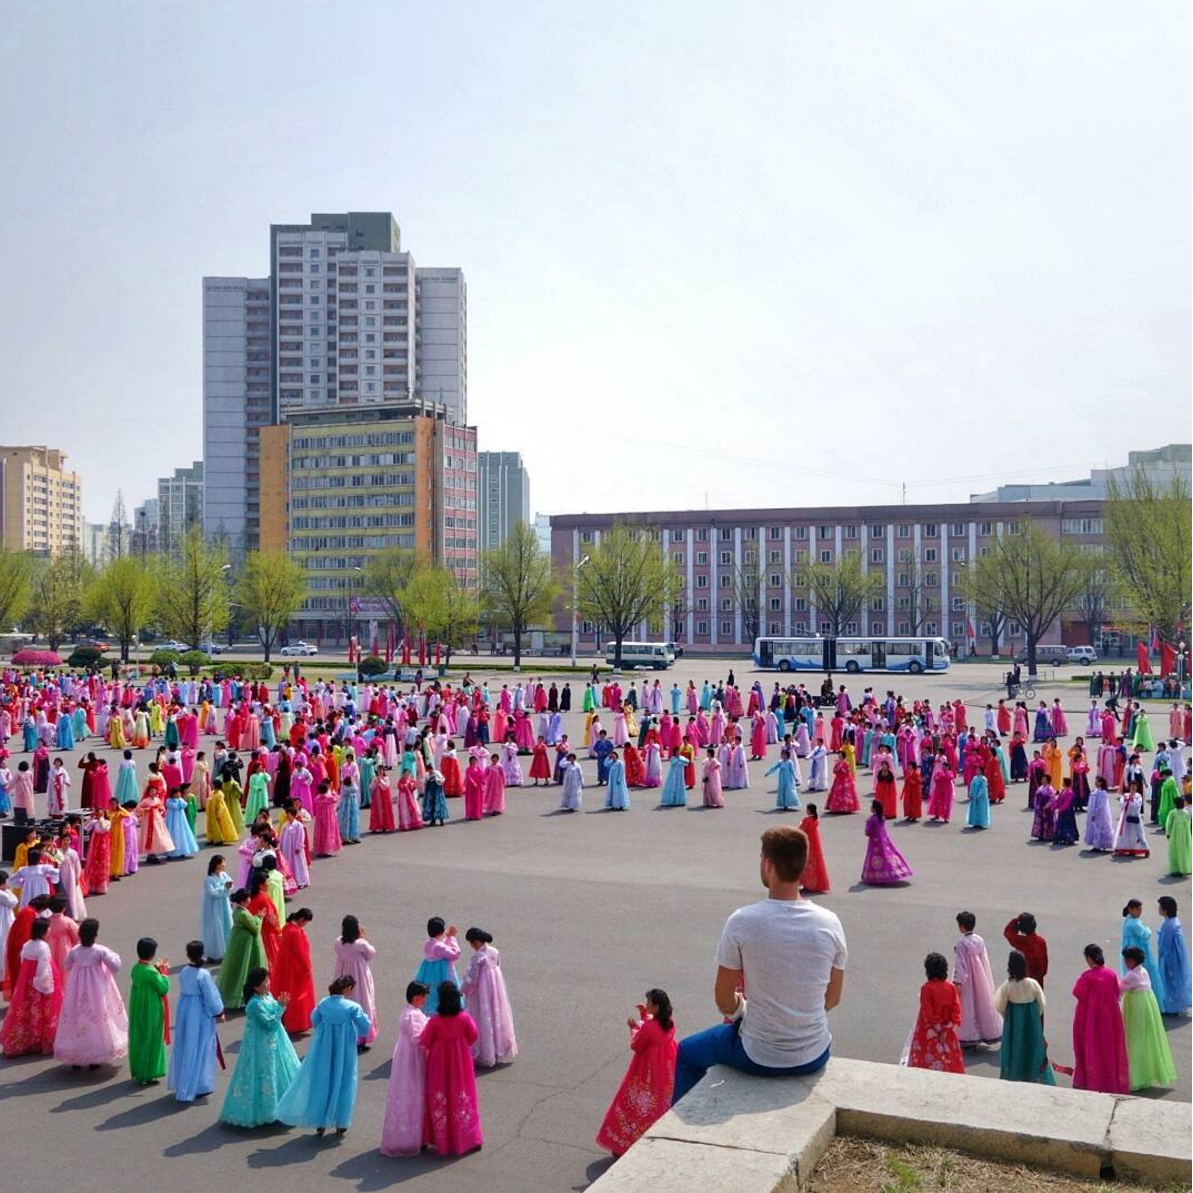 <p><i>Jacob sits watching hundreds of women practicing their dance routine for an upcoming national celebration.</i></p>